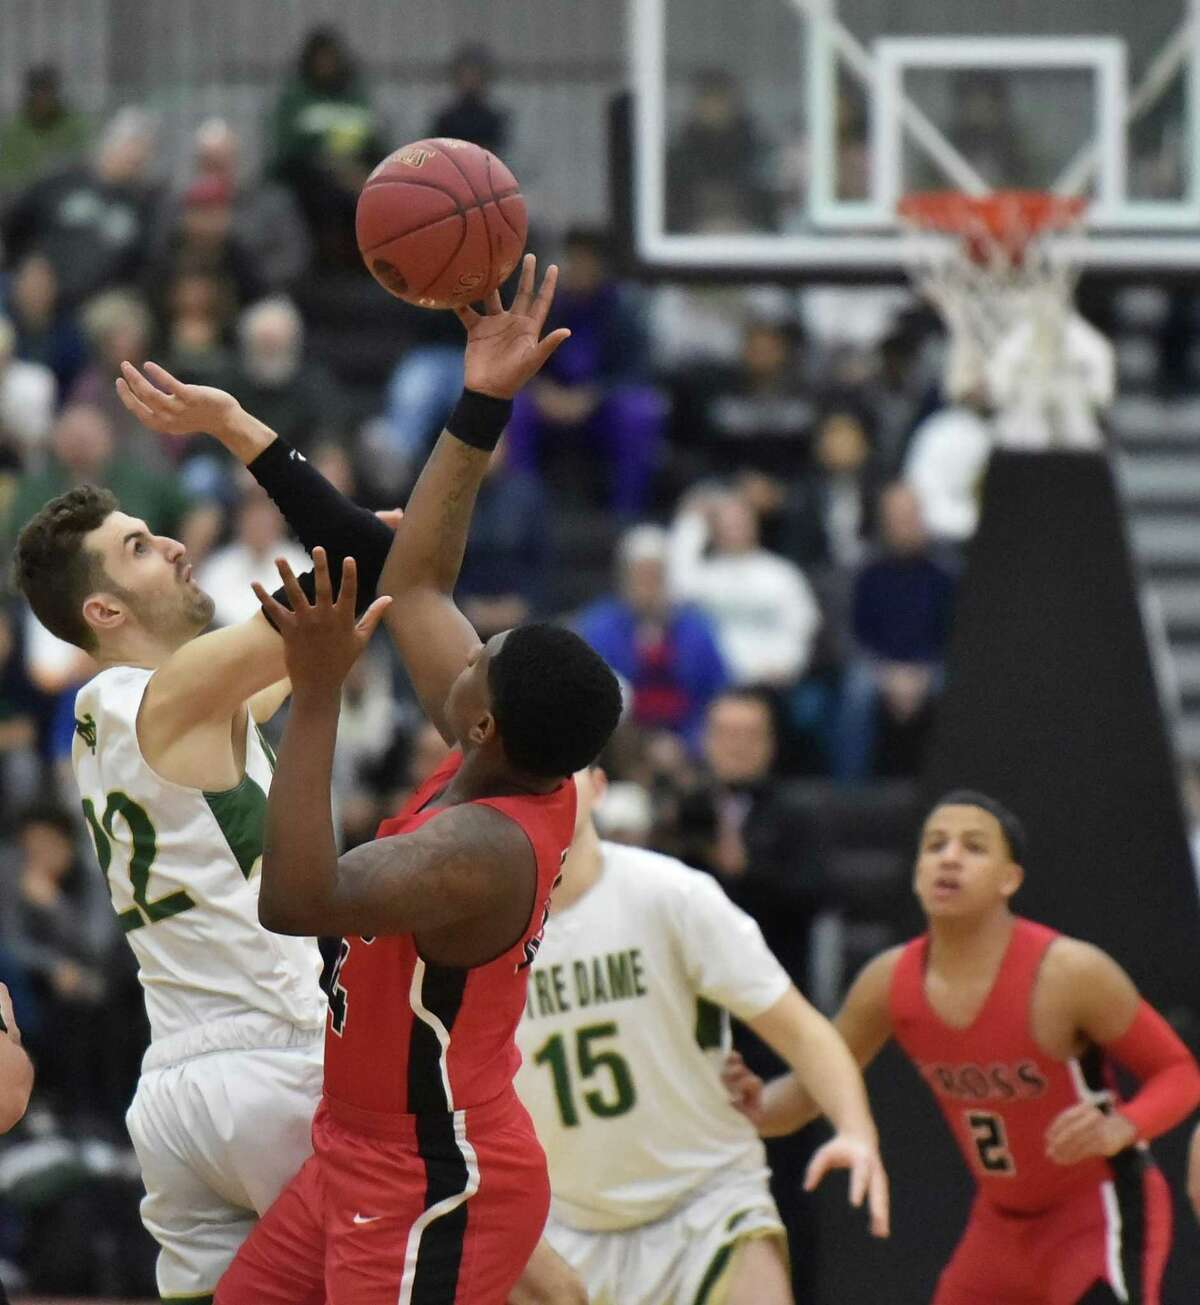 New Haven, Connecticut -Wednesday, February 27, 2019: Notre Dame H.S. of West Haven vs. Wilbur Cross H.S. of New Haven SCC Boys Basketball Championship final Wednesday evening at the Floyd Little Athletic Center in New Haven